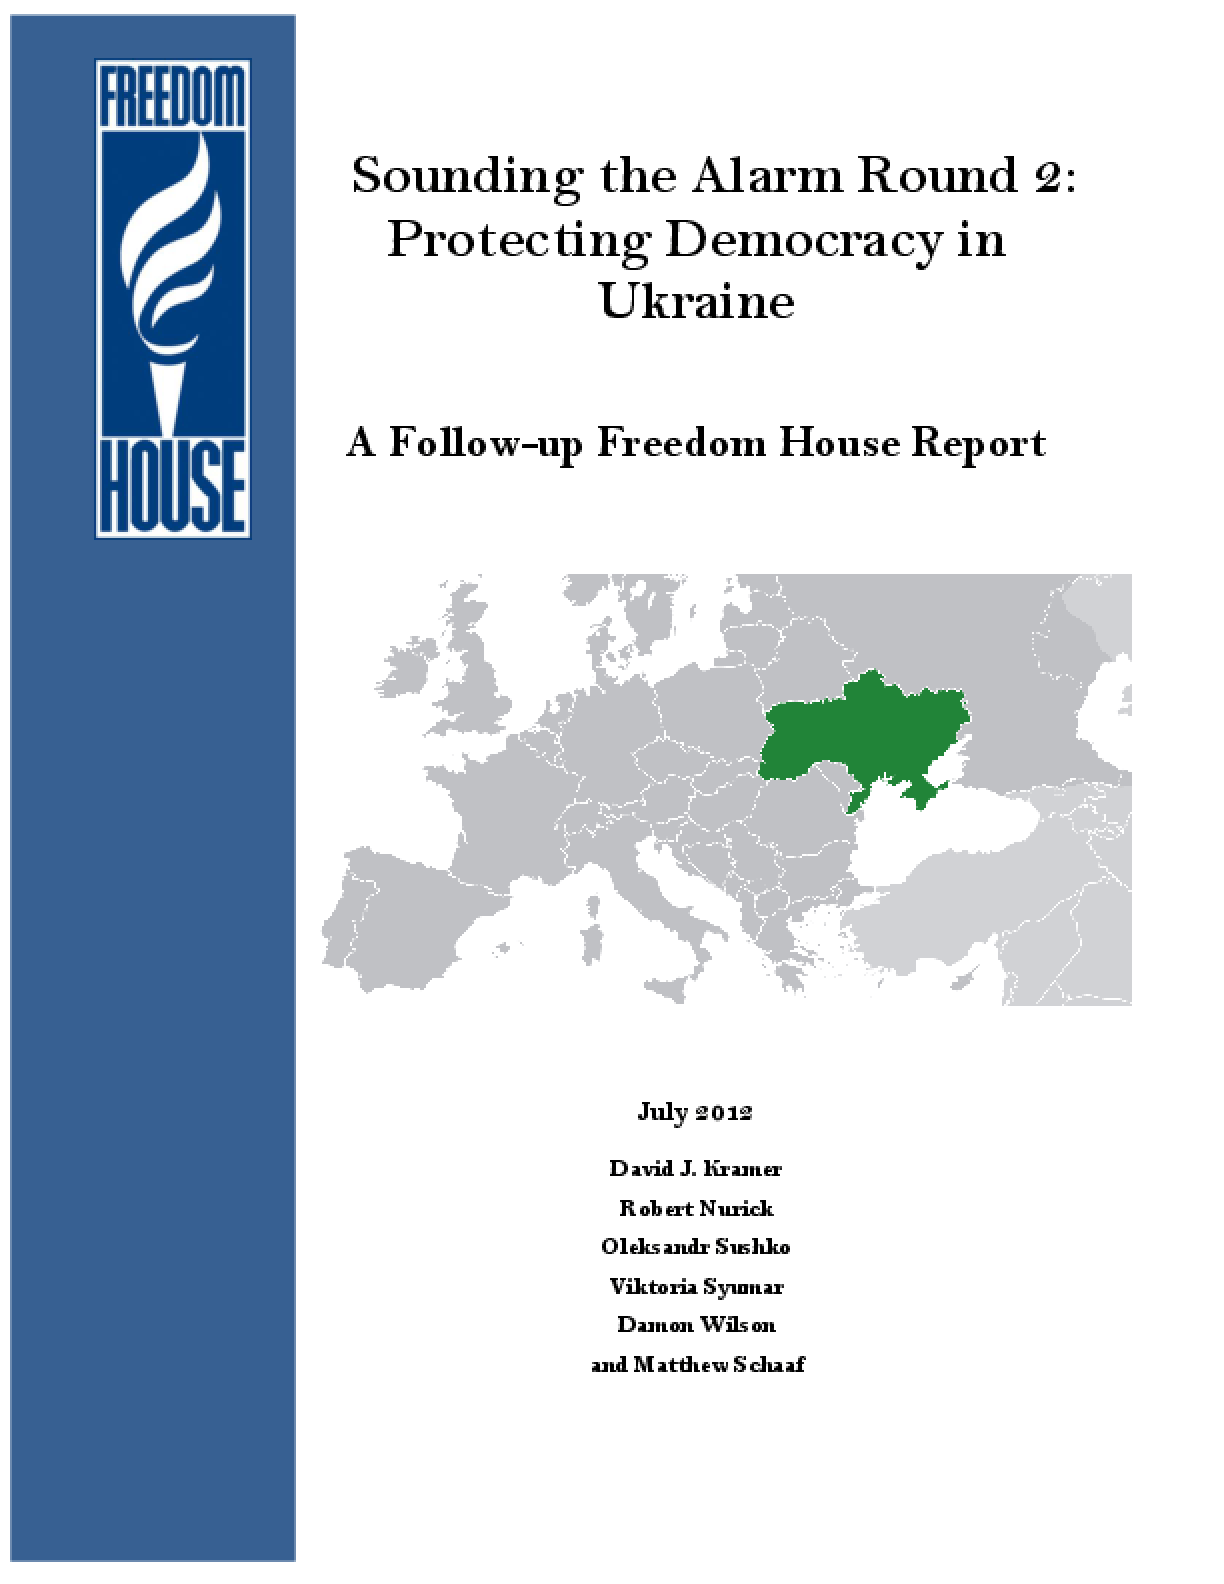 Sounding the Alarm Round 2: Protecting Democracy in Ukraine